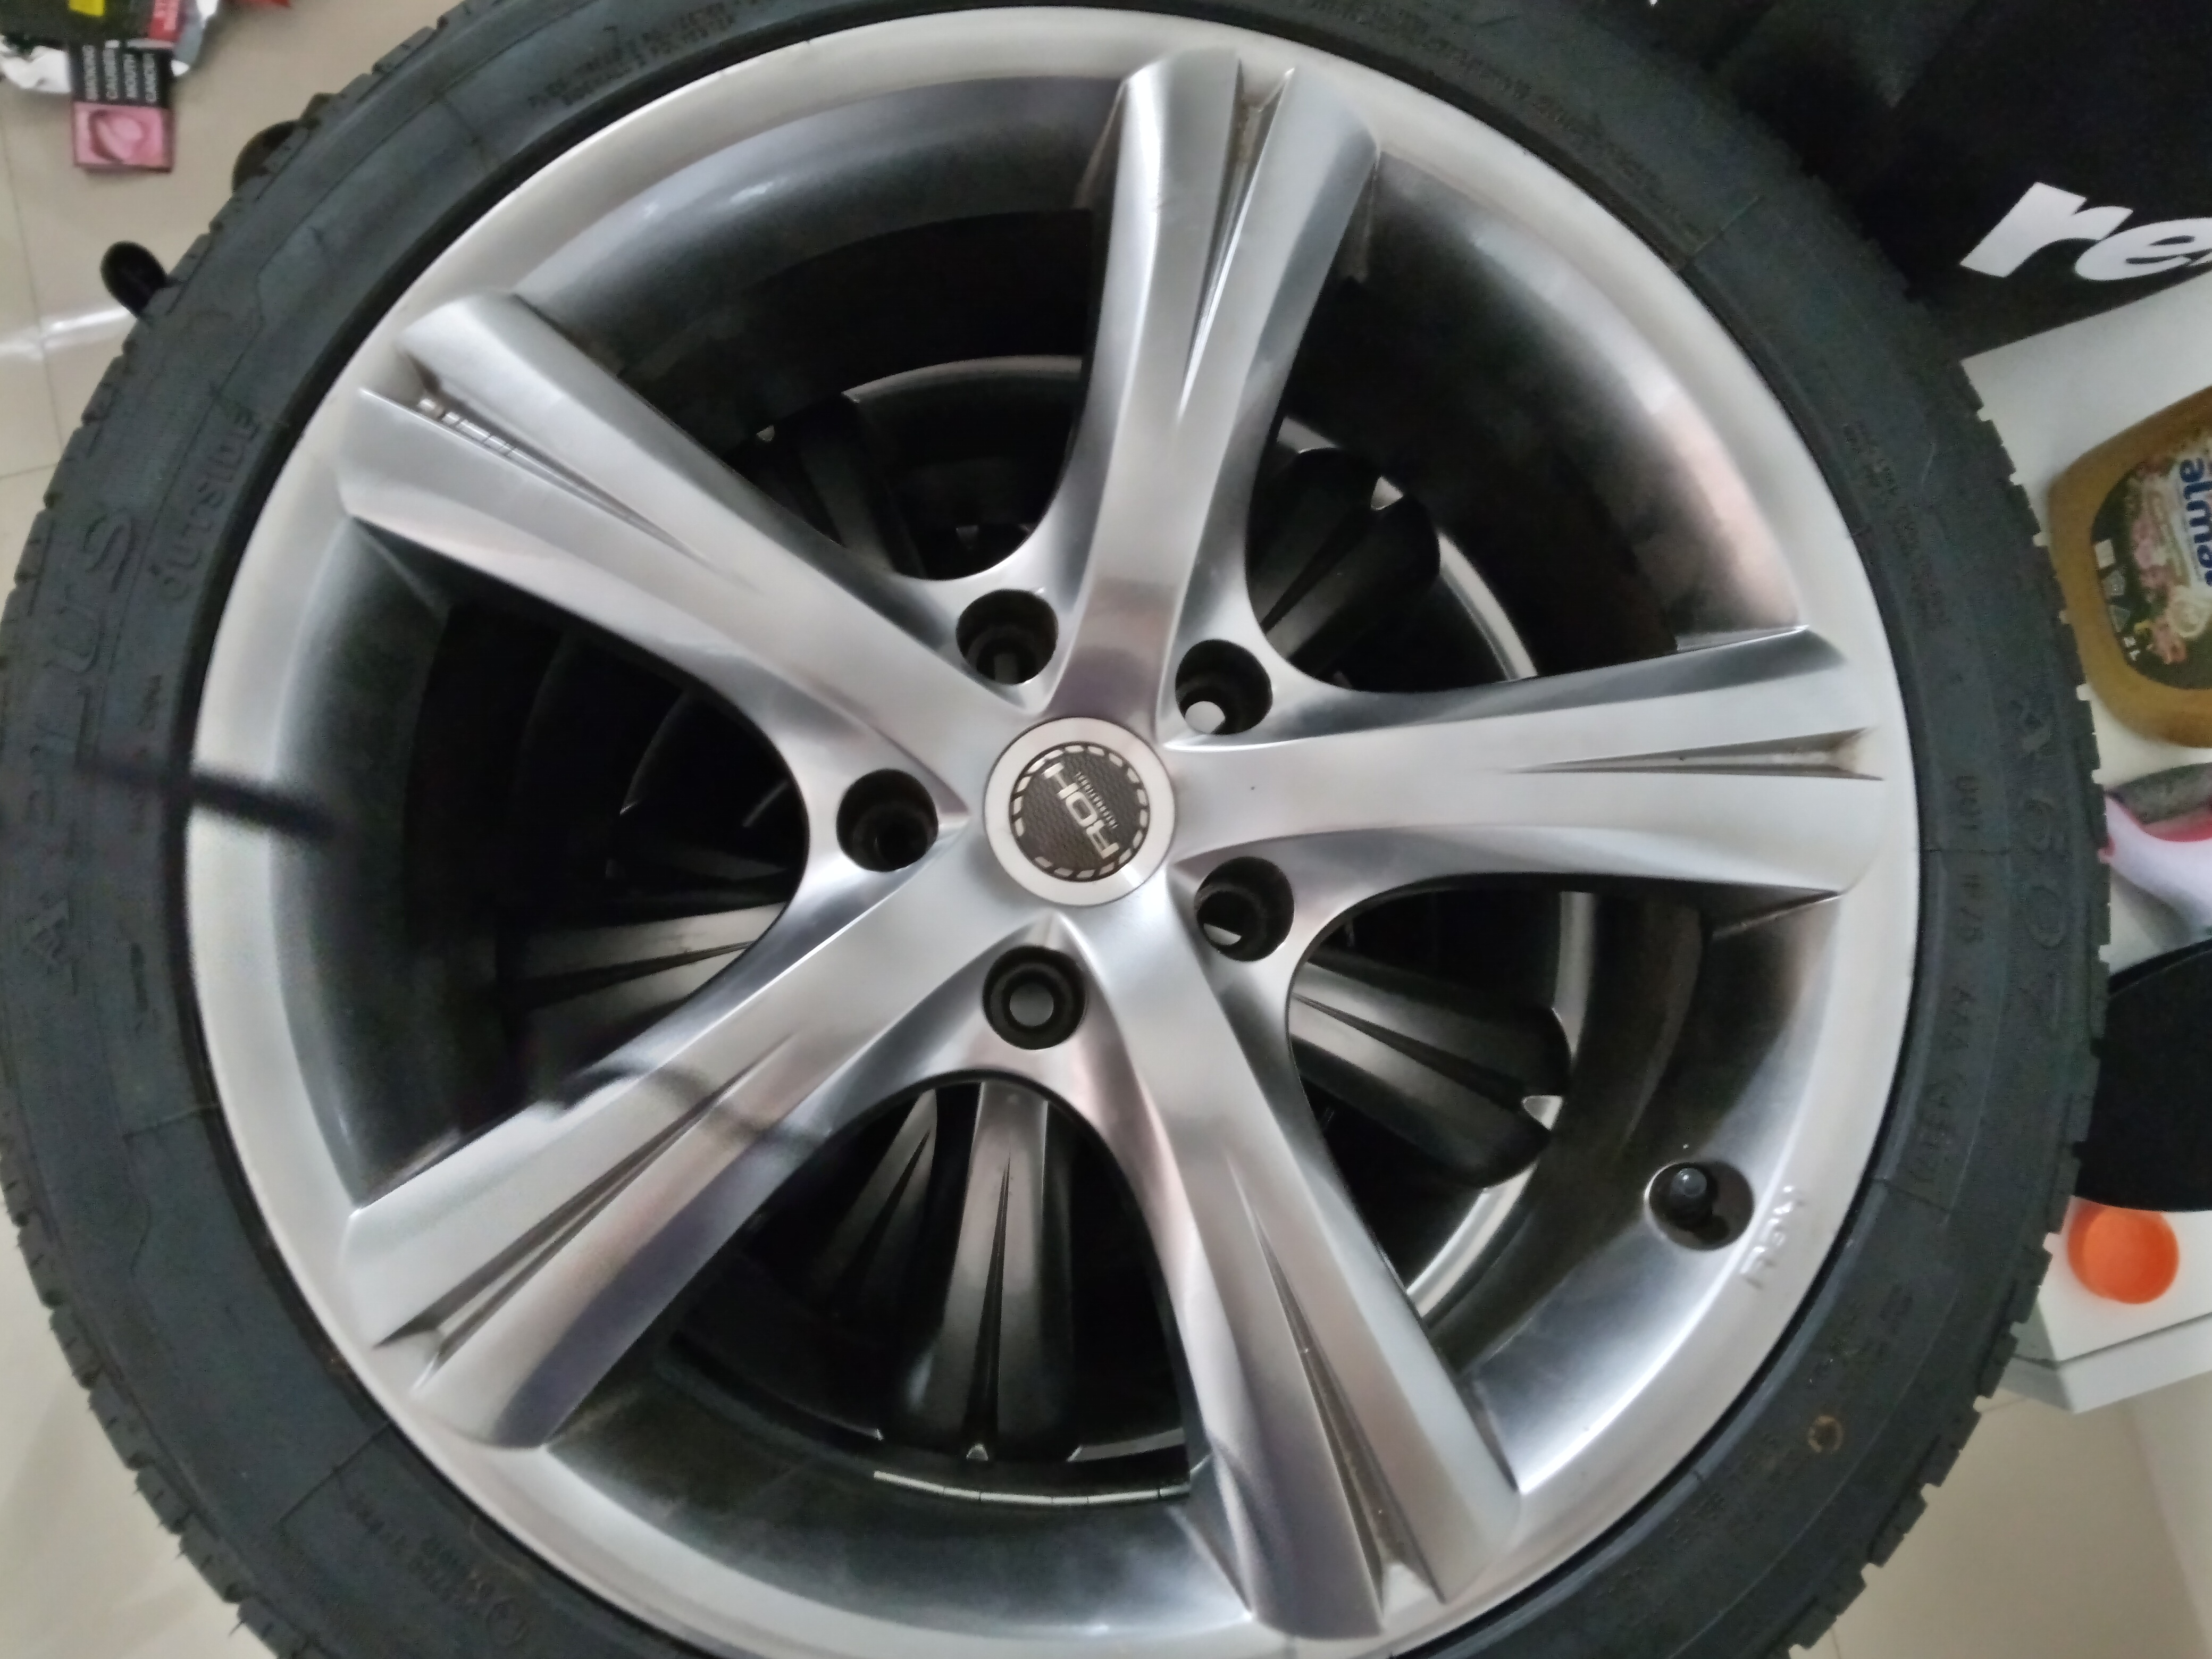 19/20 inch Holden Commodore tyres